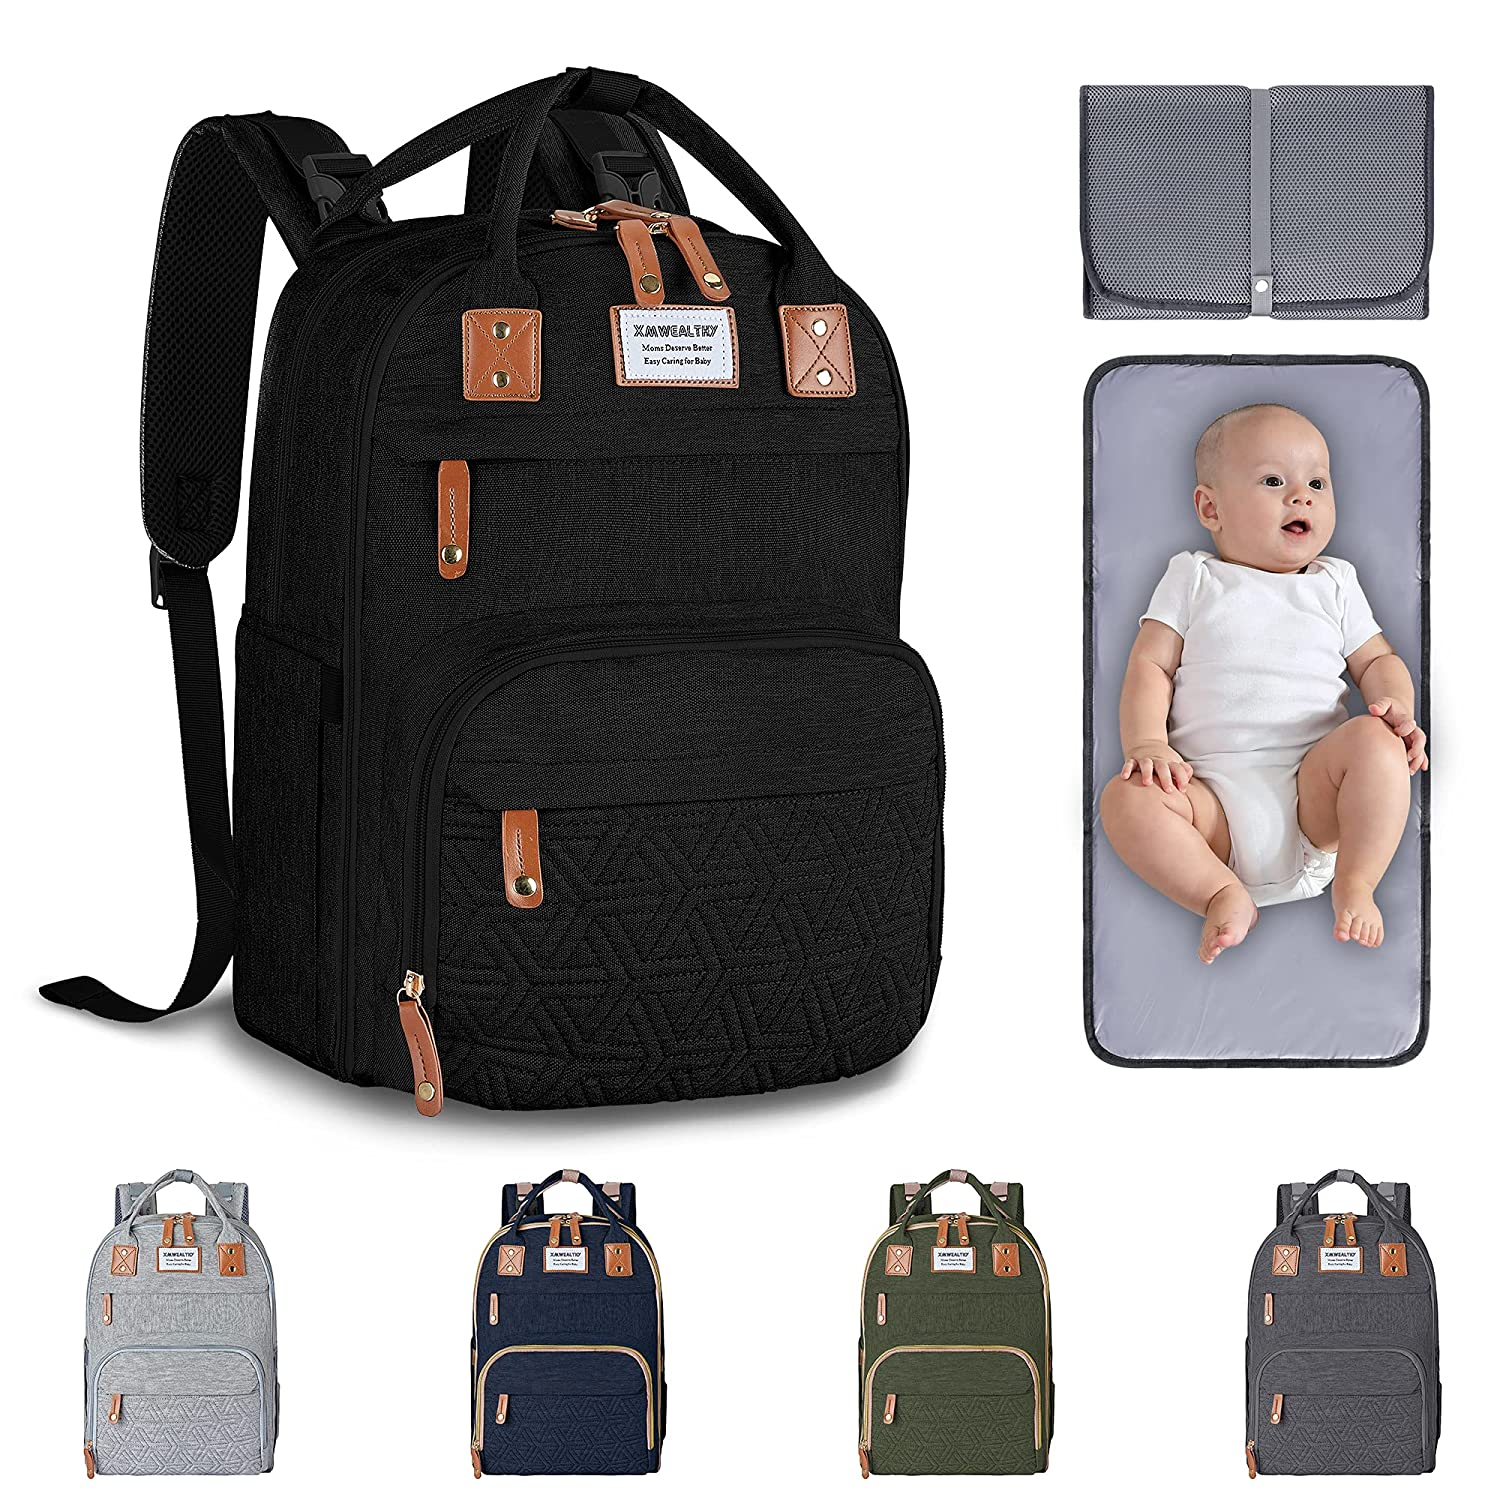 Baby Diaper Bag Backpack, Large Unisex Baby Bags for Boys Girls, Multifunction Travel Baby Back Pack, Waterproof & Stylish Baby Changing Bags with Changing Pad & Stroller Straps, Black